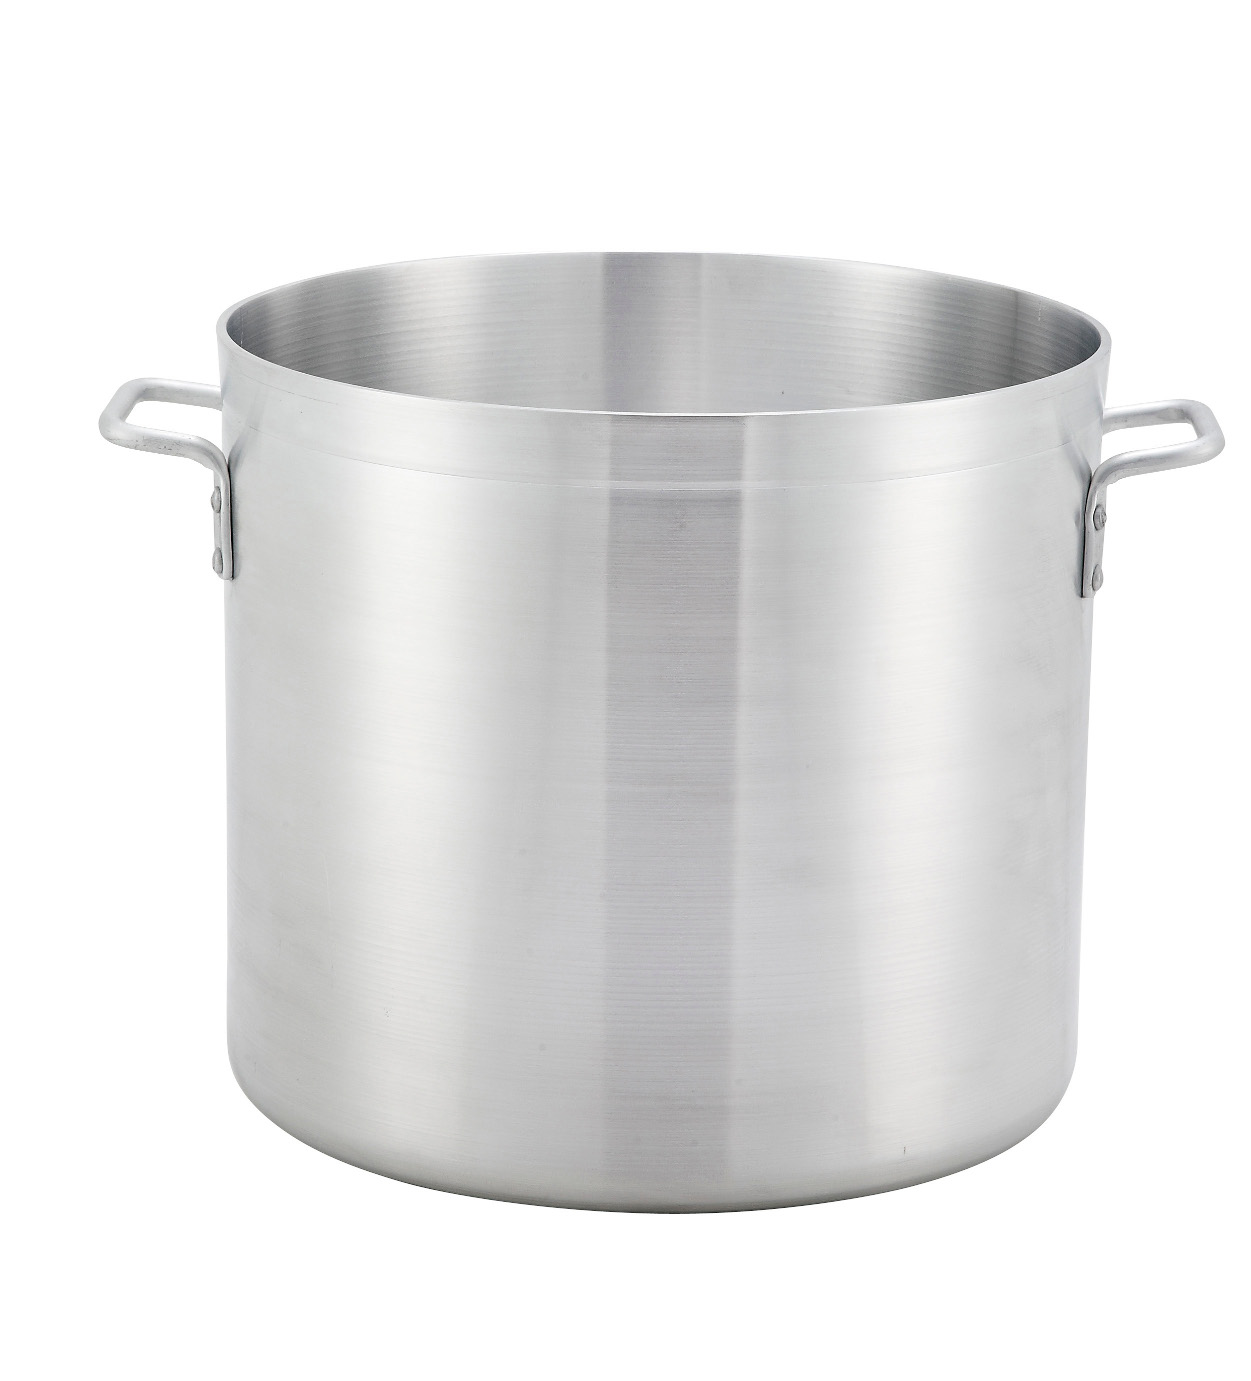 Aluminum Stock Pot 24 Qt, 4.0 MM, 12.6